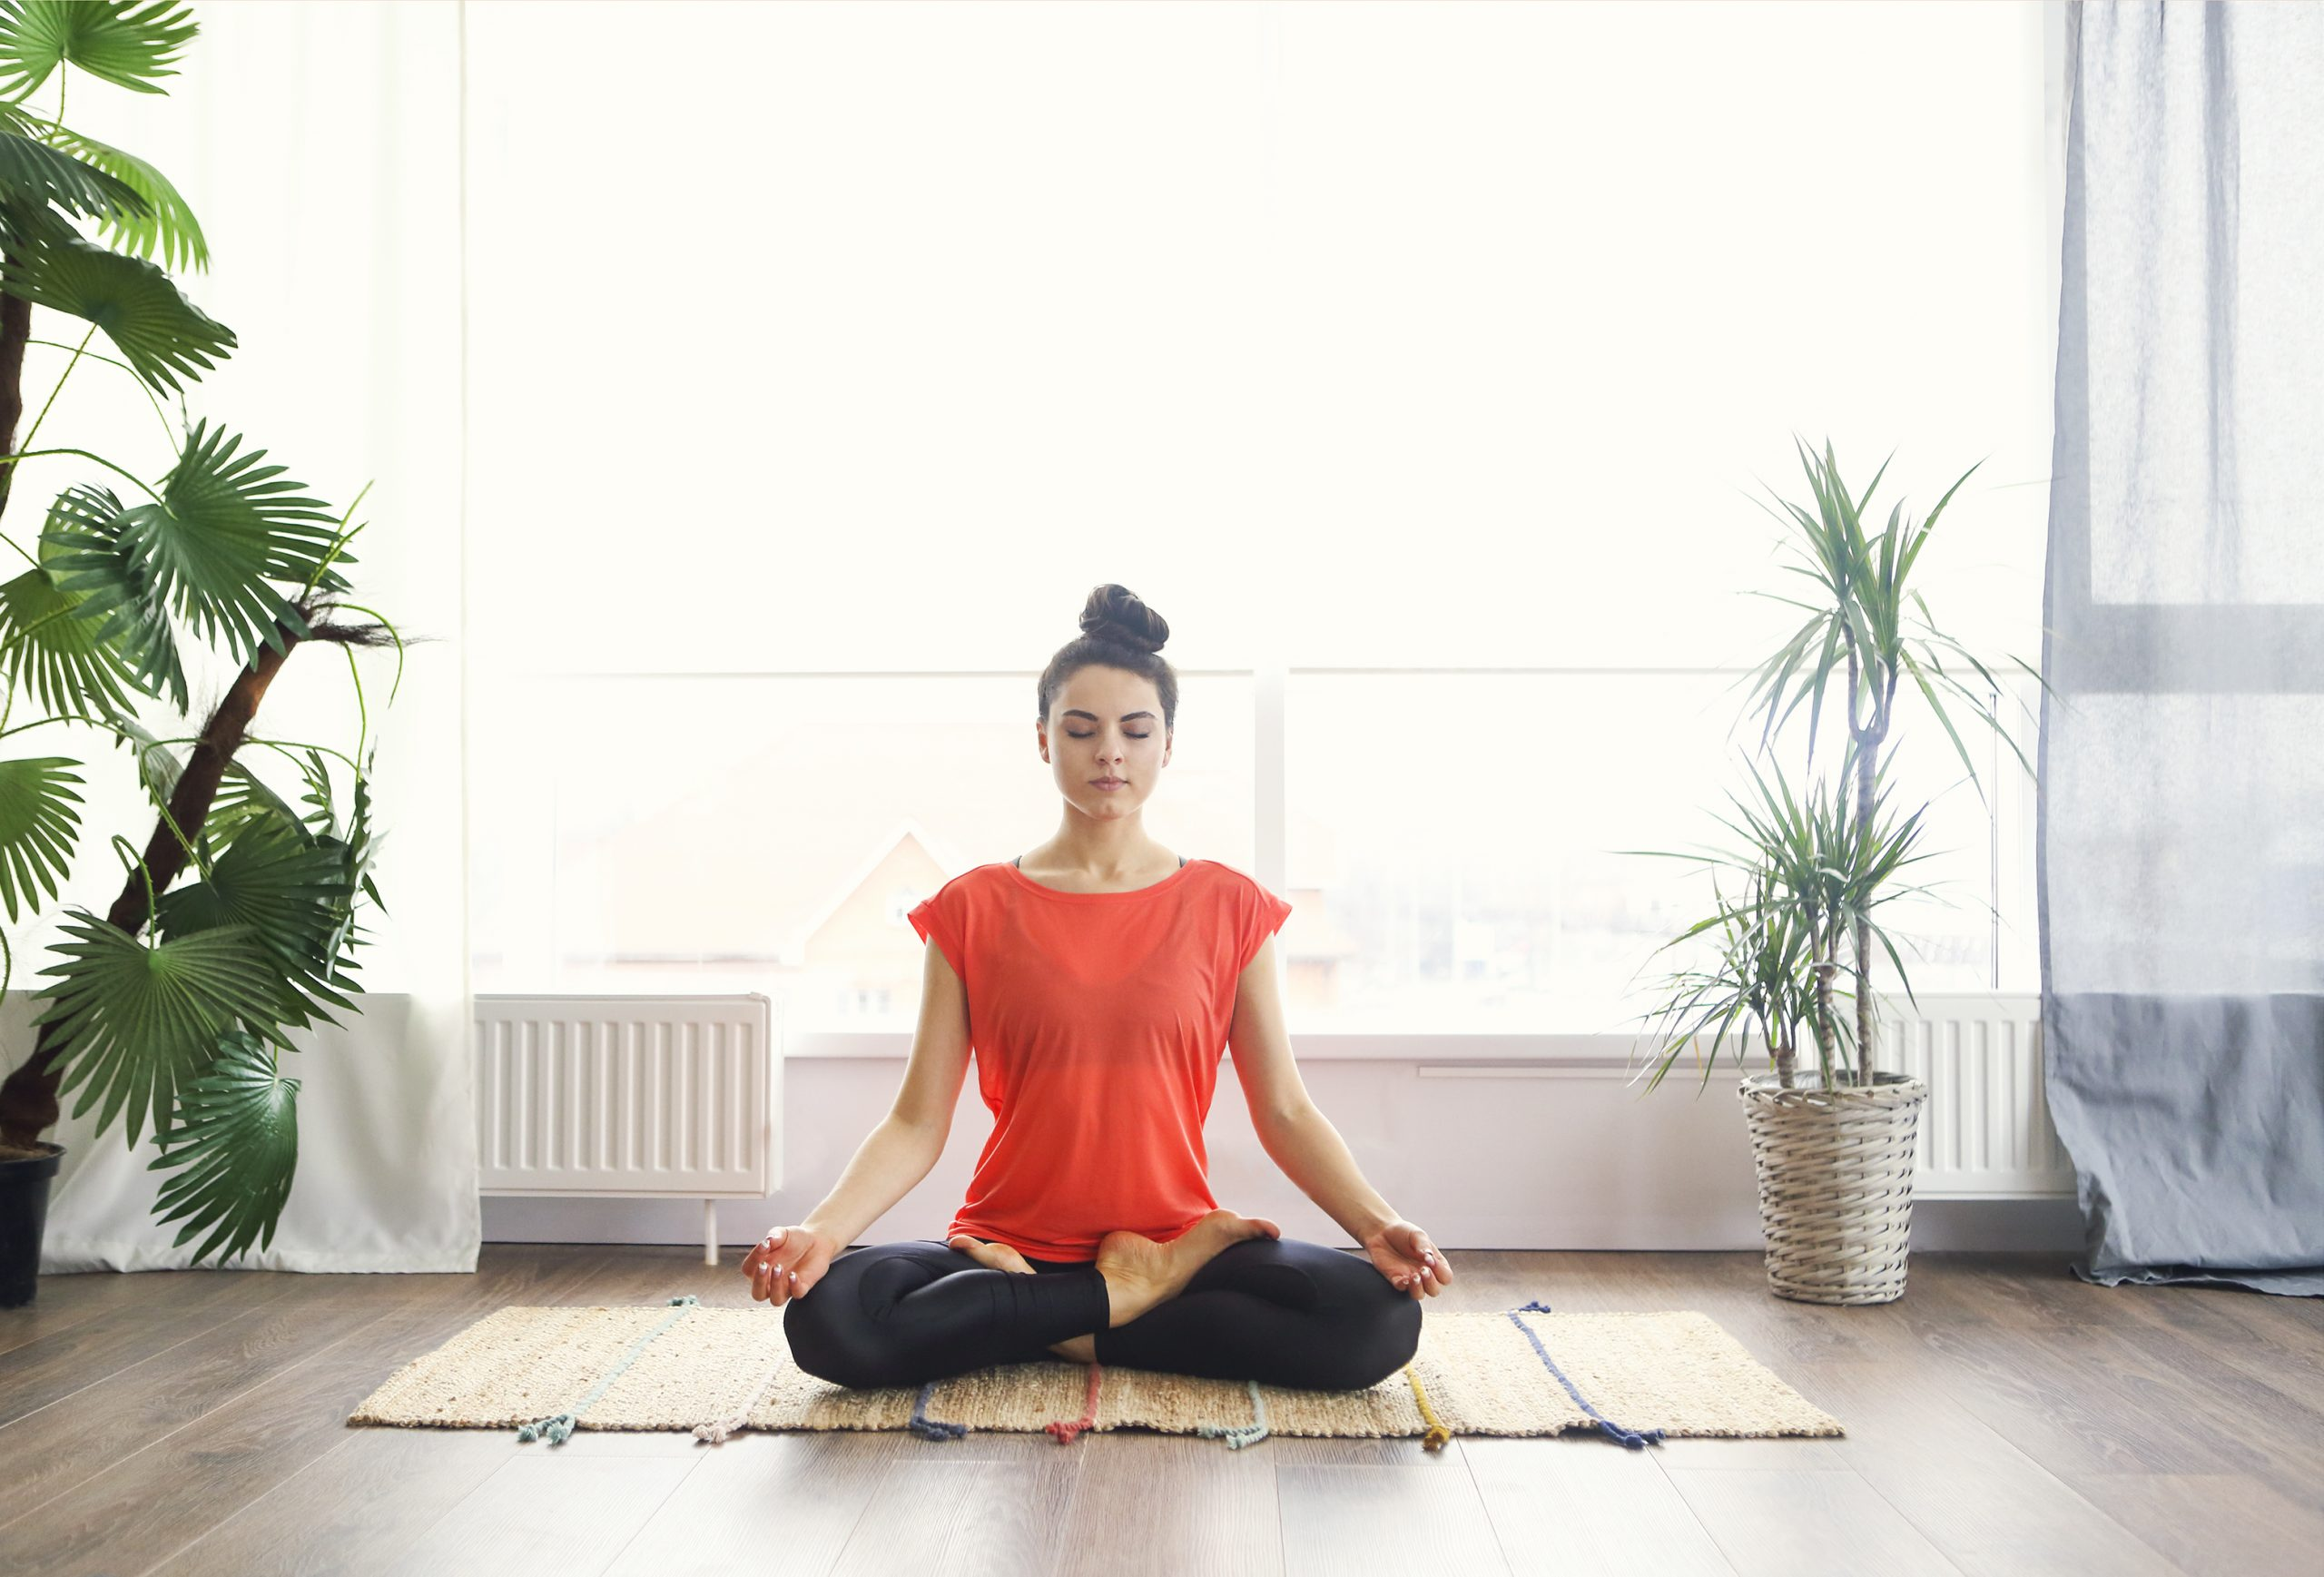 Yoga For Anxiety And Depression: 4 Yoga Poses To Uplift You